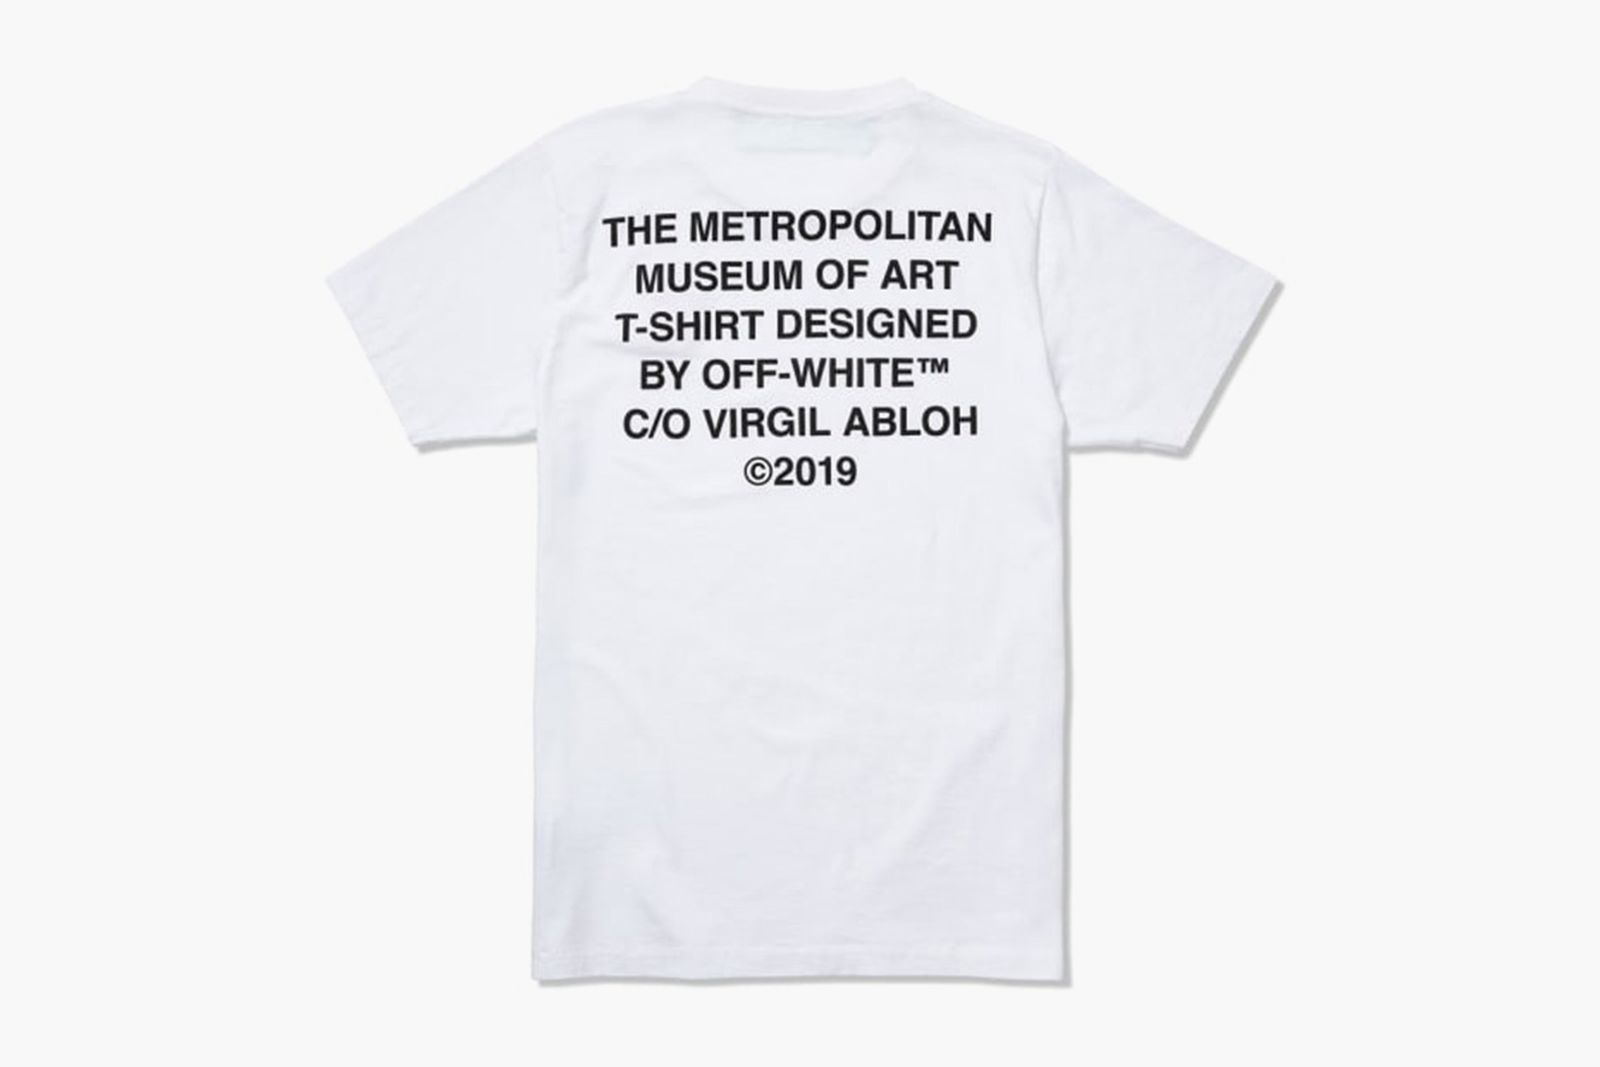 met camp collection off white Gucci Met Gala 2019 OFF-WHITE c/o Virgil Abloh